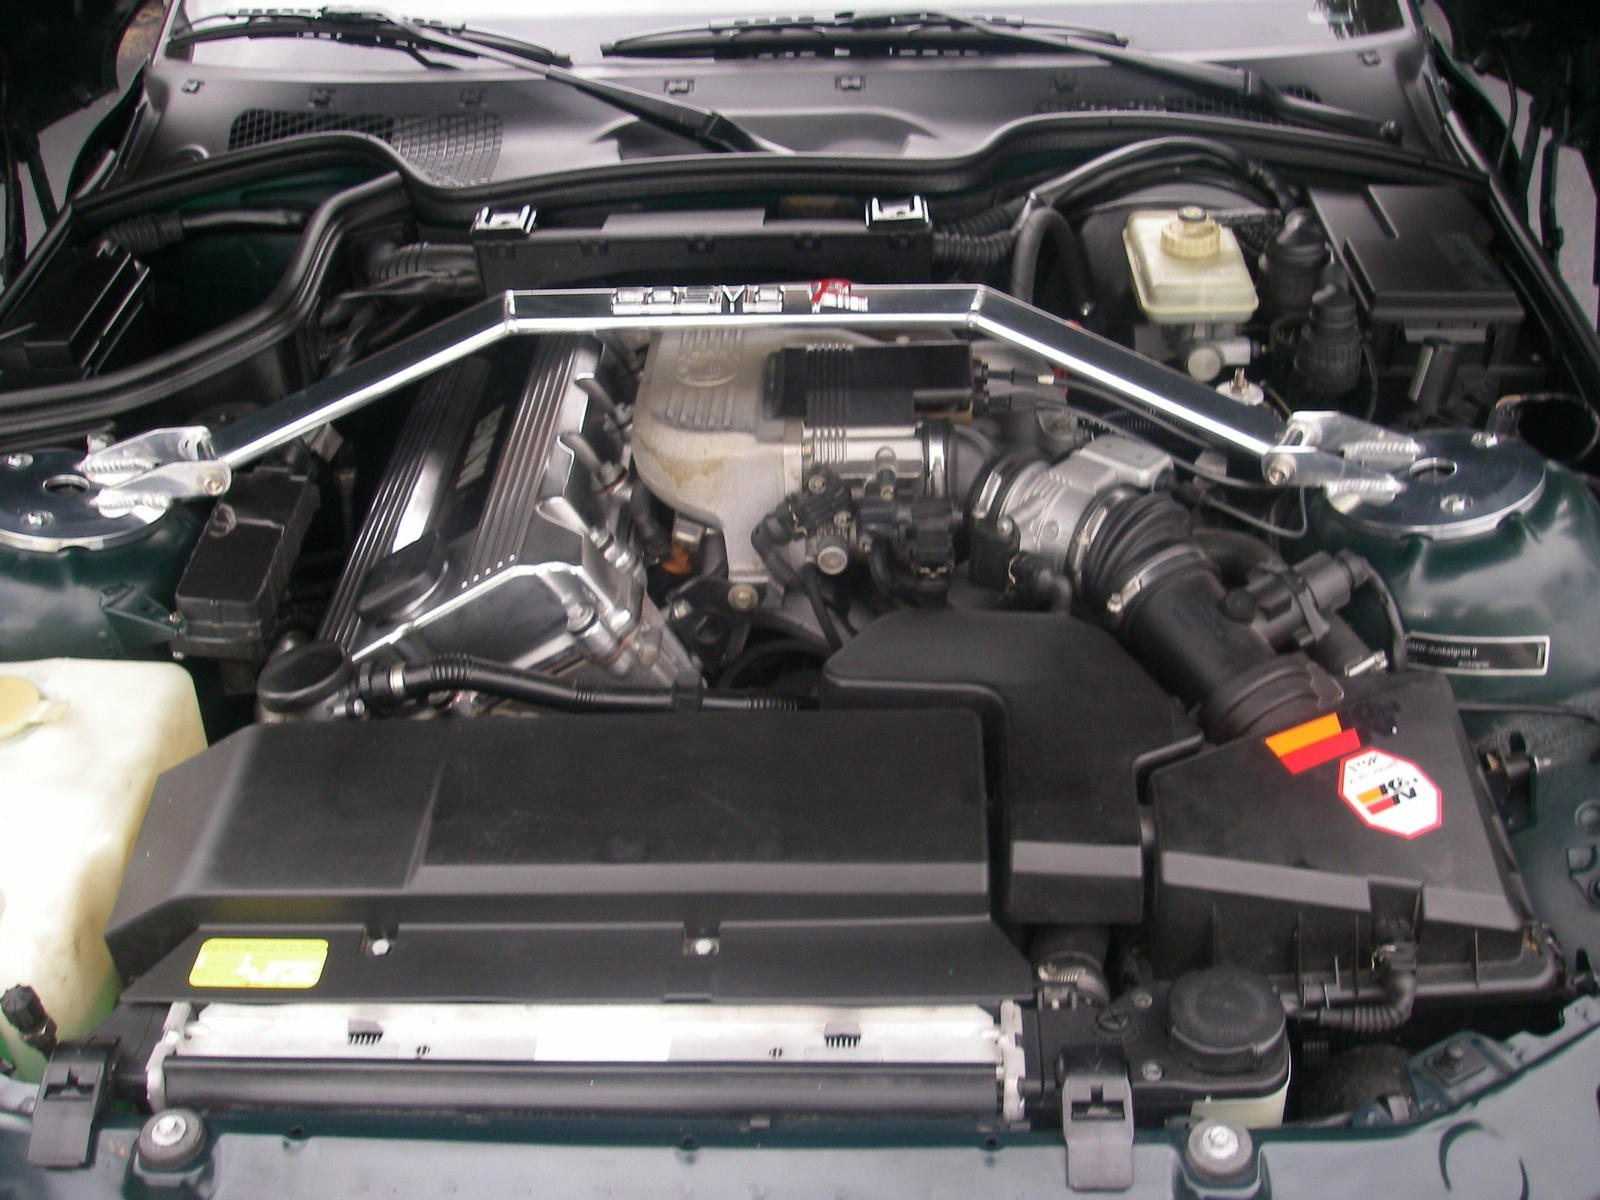 BMW Z3 engine